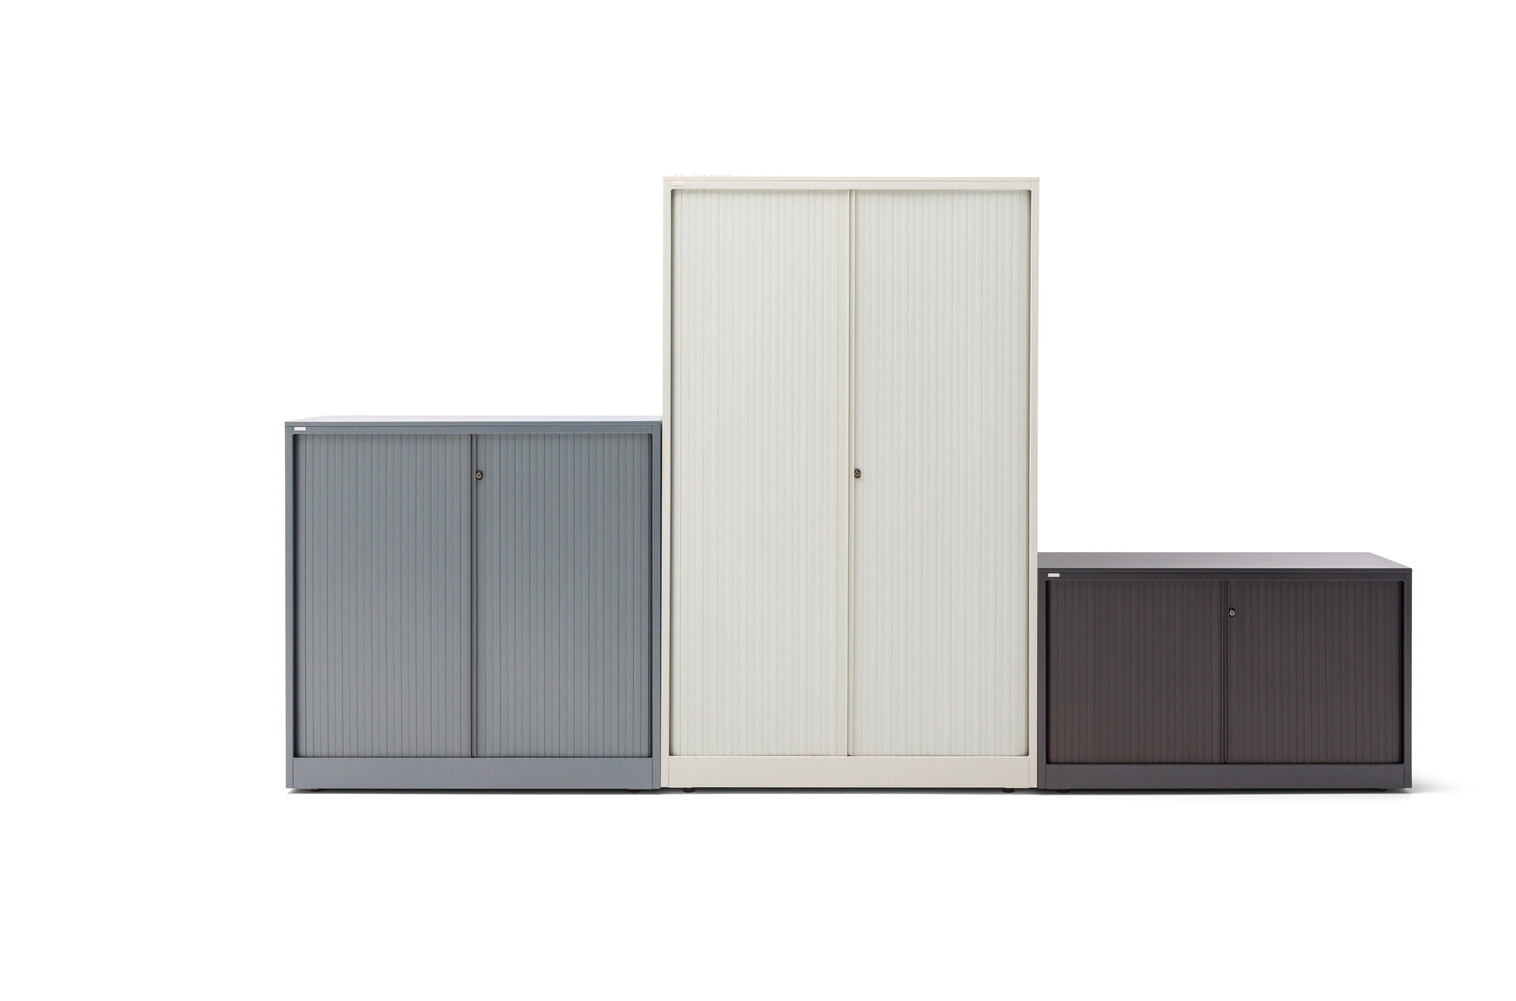 Gispen Meta tambour cabinet in grey white and black front view